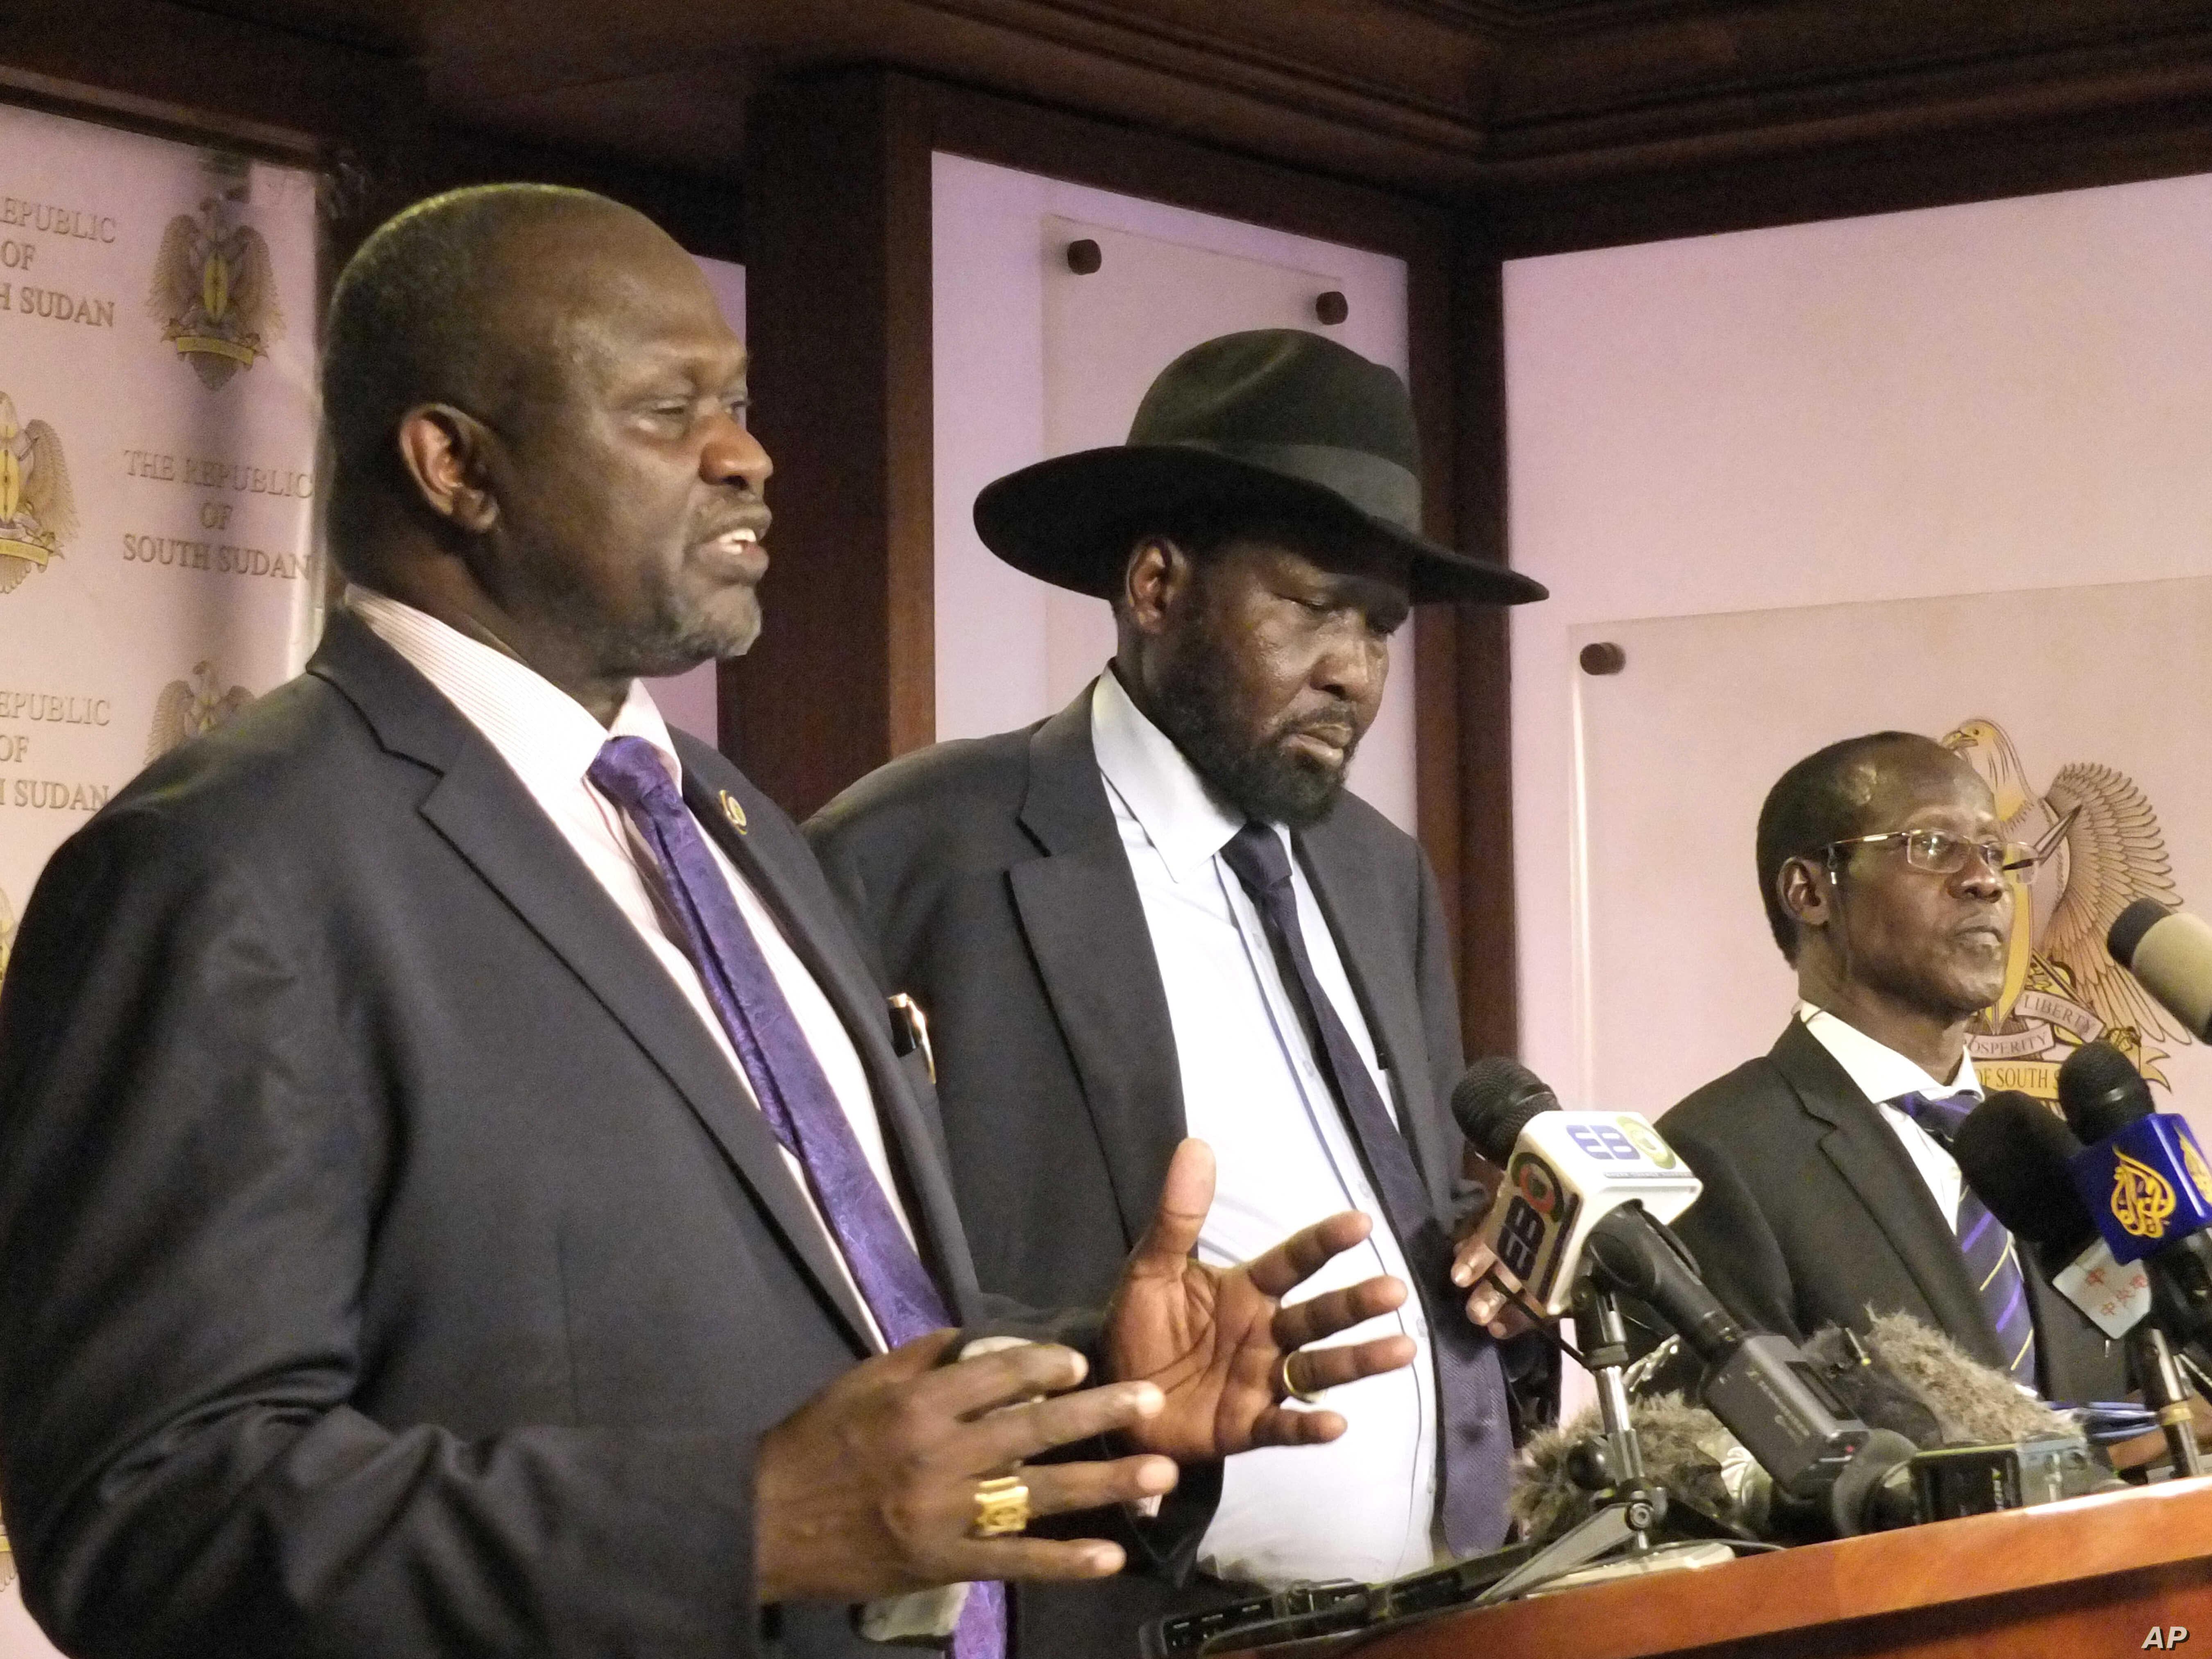 South Sudan Riek Machar, left. Salva Kiir, South Sudan President, and James Wani Igga, Vice president during a press conference at Presidential palace in Juba, South Sudan, July 8, 2016, after fighting started erupted when a group of unidentified sol...